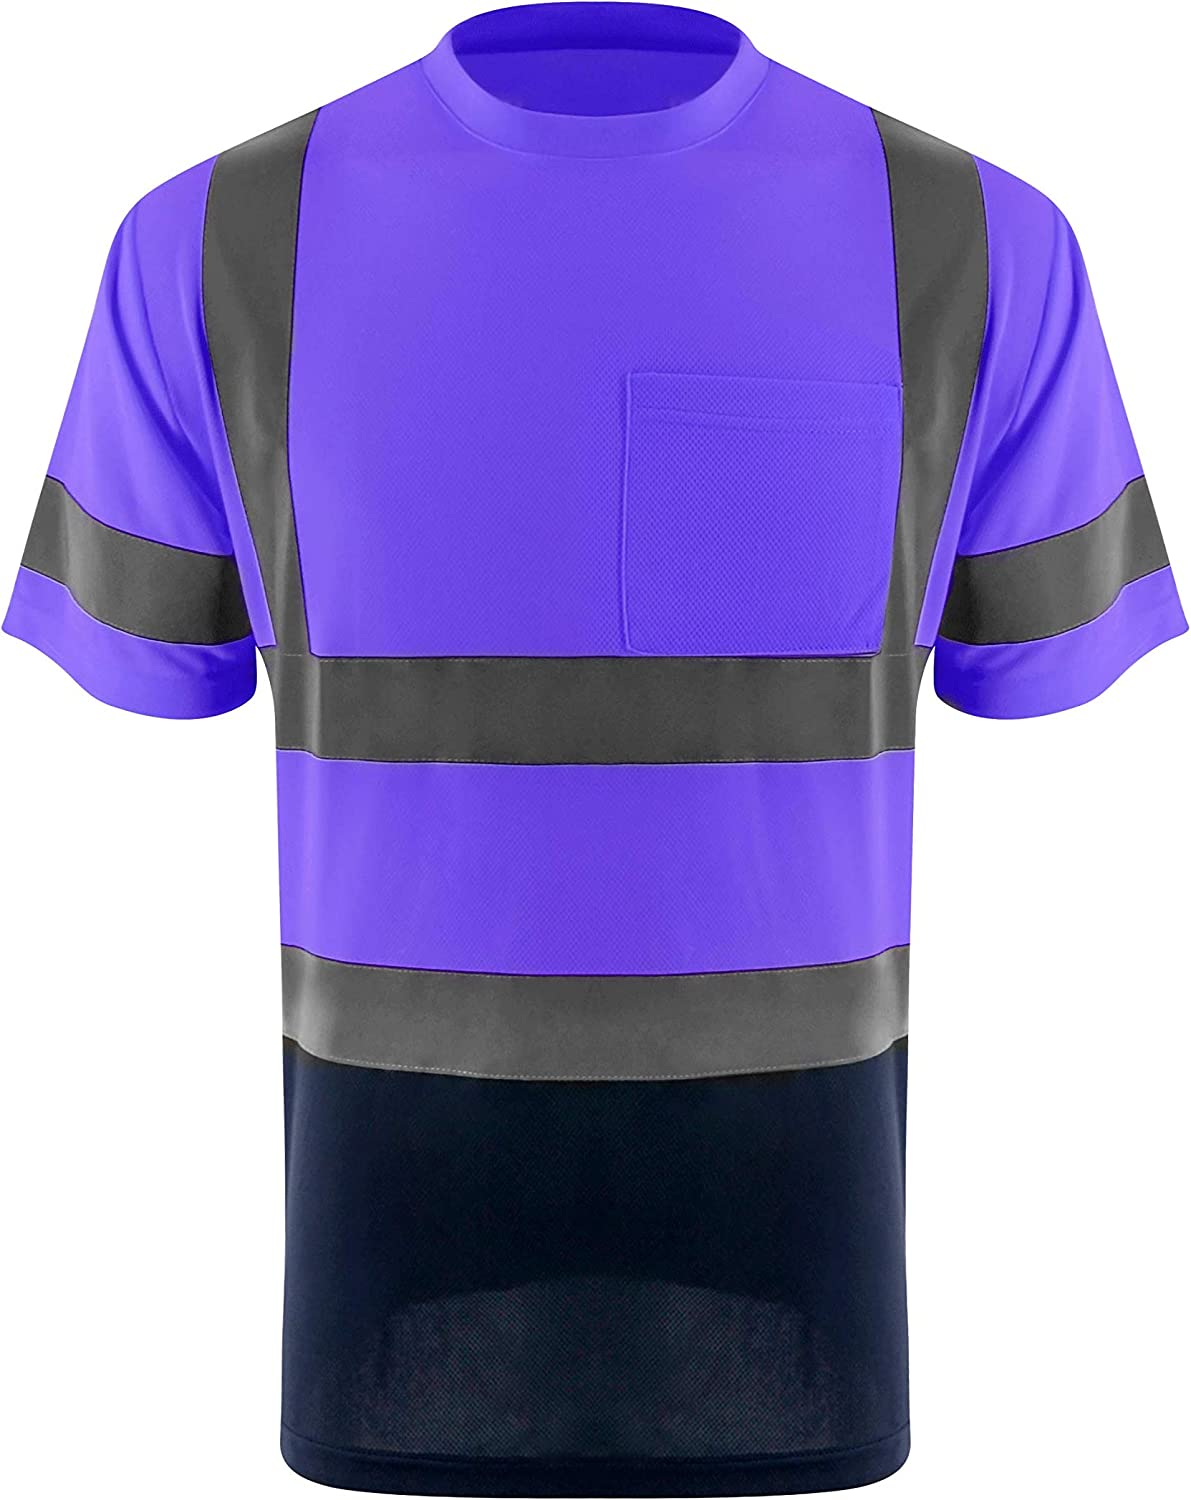 ZUJA Safety High Visibility Sales for sale Standard Sleeve Men Super beauty product restock quality top Breathable Short